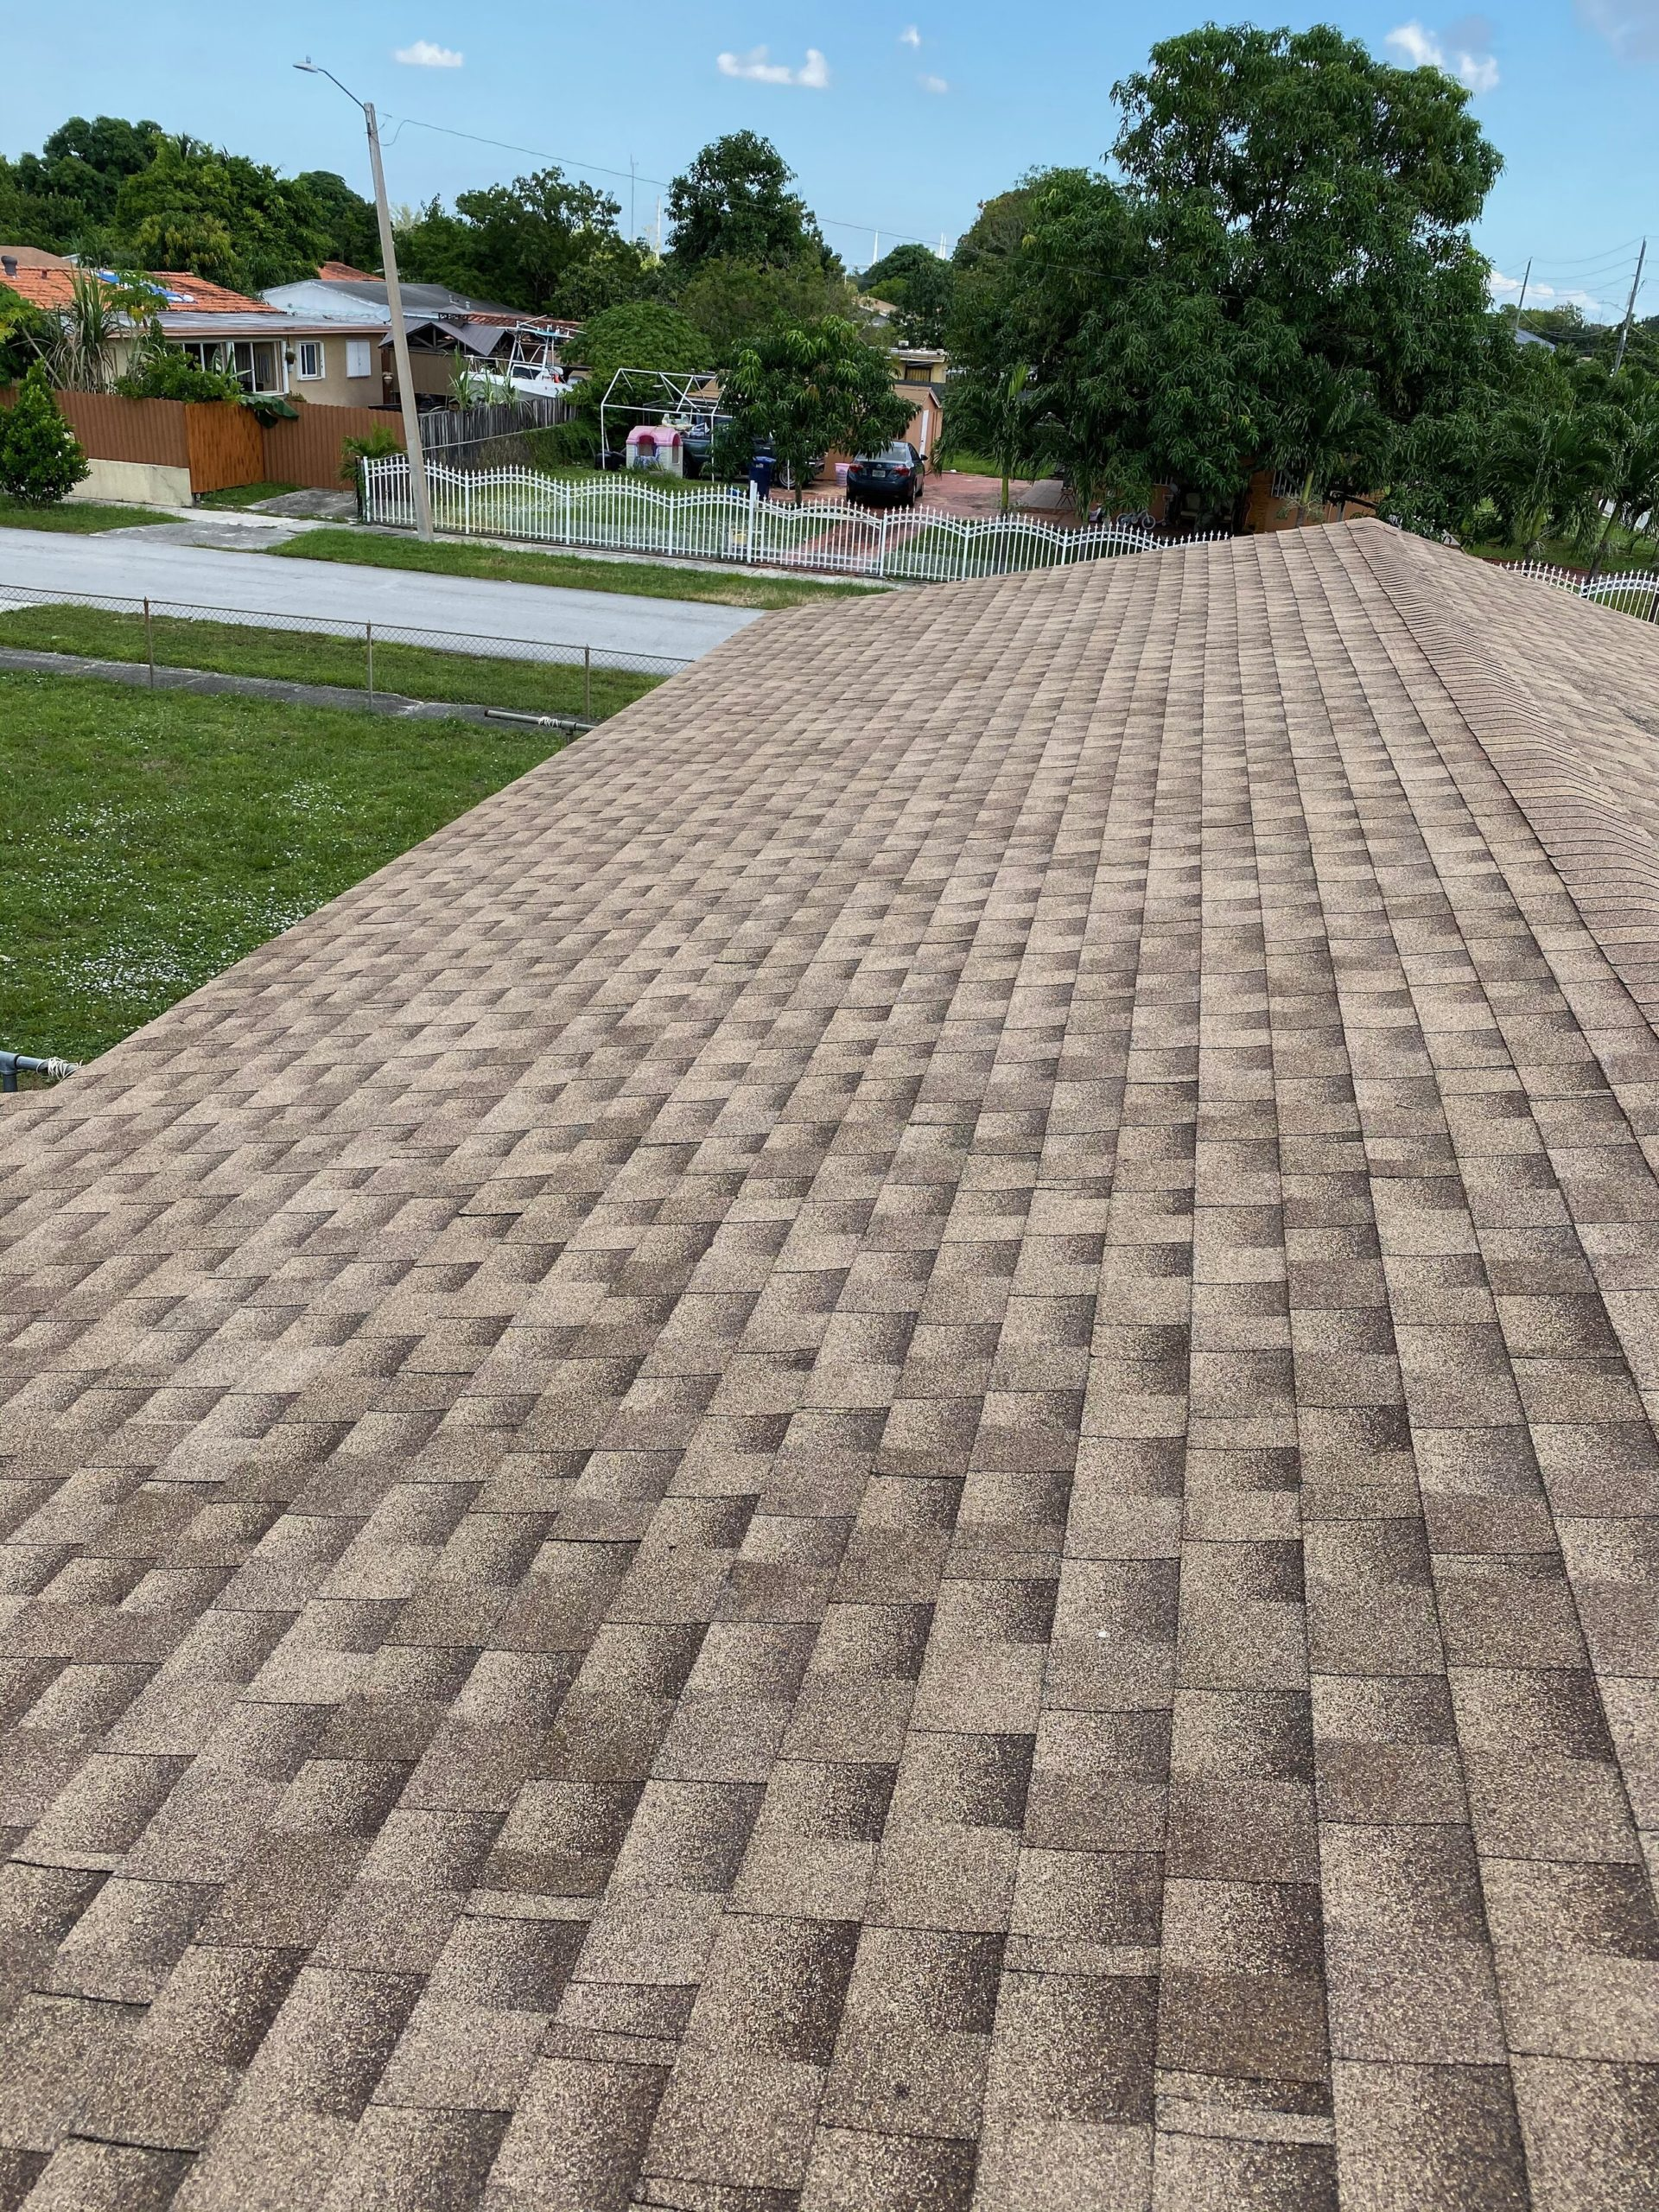 Dimensional Shingle Roof - Seal Tight Roofing - Miami, Florida